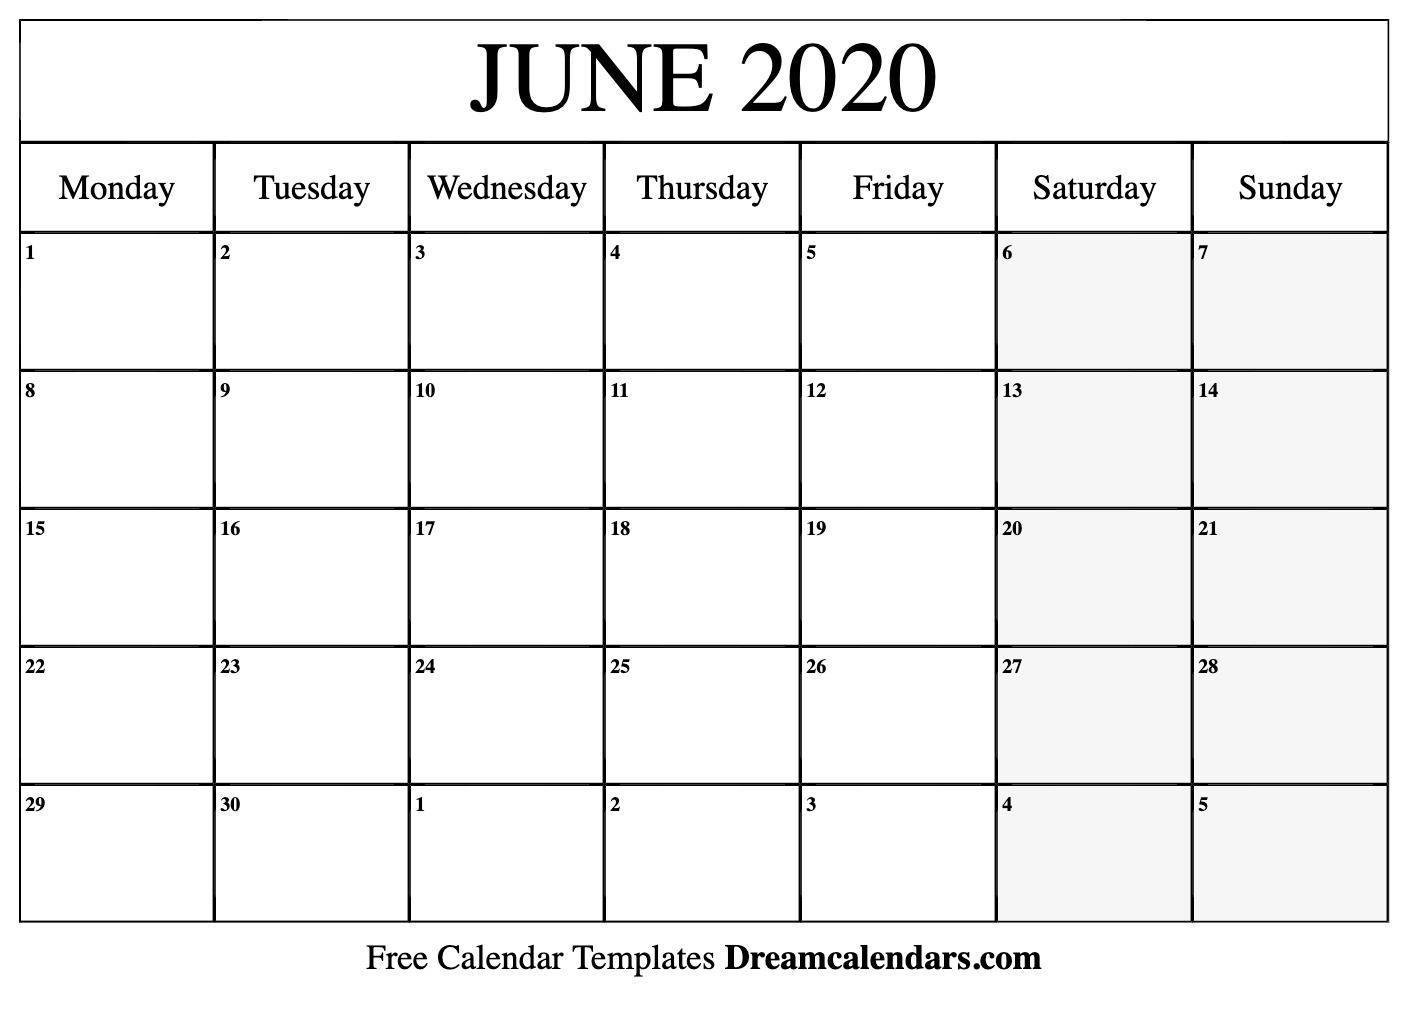 Printable June 2020 Calendar with July 2019 - July 2020 Calendar Printable Free